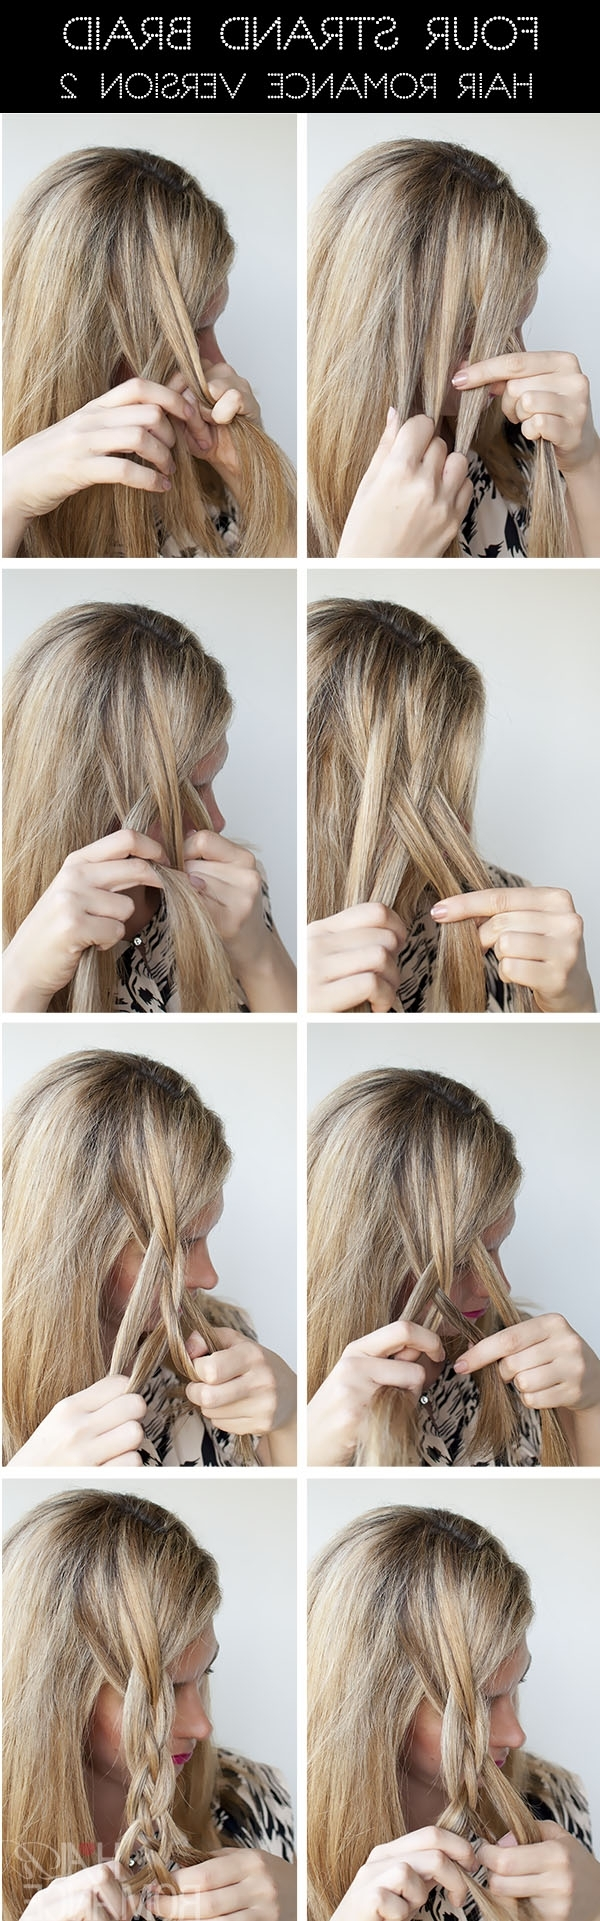 Hairstyle Tutorial – Four Strand Braids And Slide Up Braids – Hair Pertaining To Widely Used Up Braided Hairstyles (View 5 of 15)